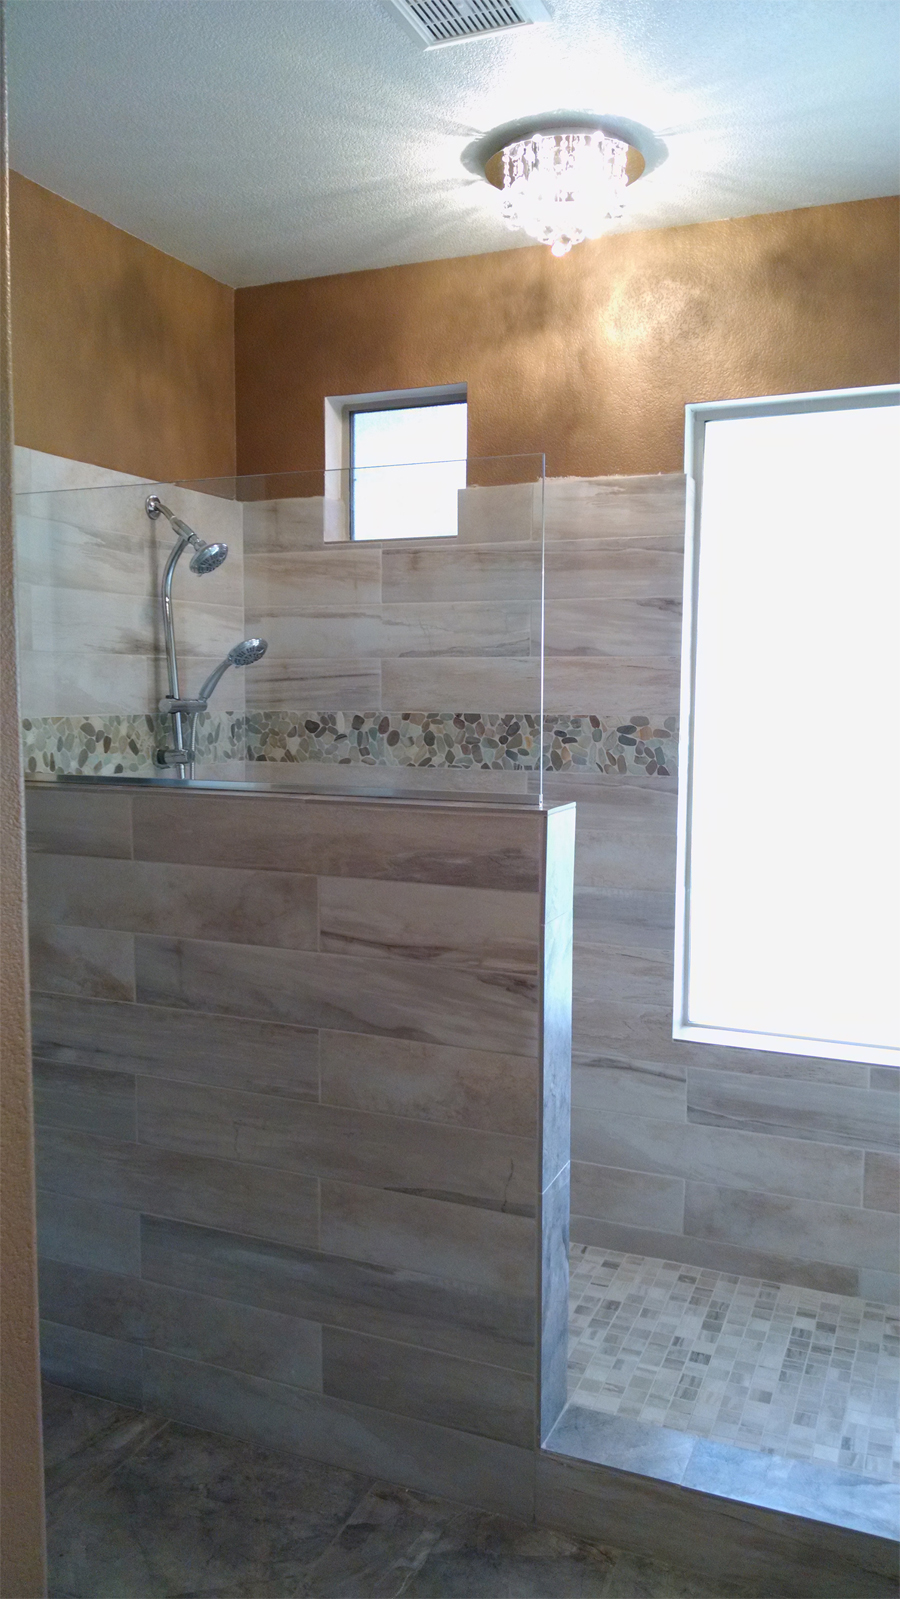 Phoenix Bathroom Remodel Fascinating Home Remodeling Phoenix  Champion Remodeling Llc. Decorating Design